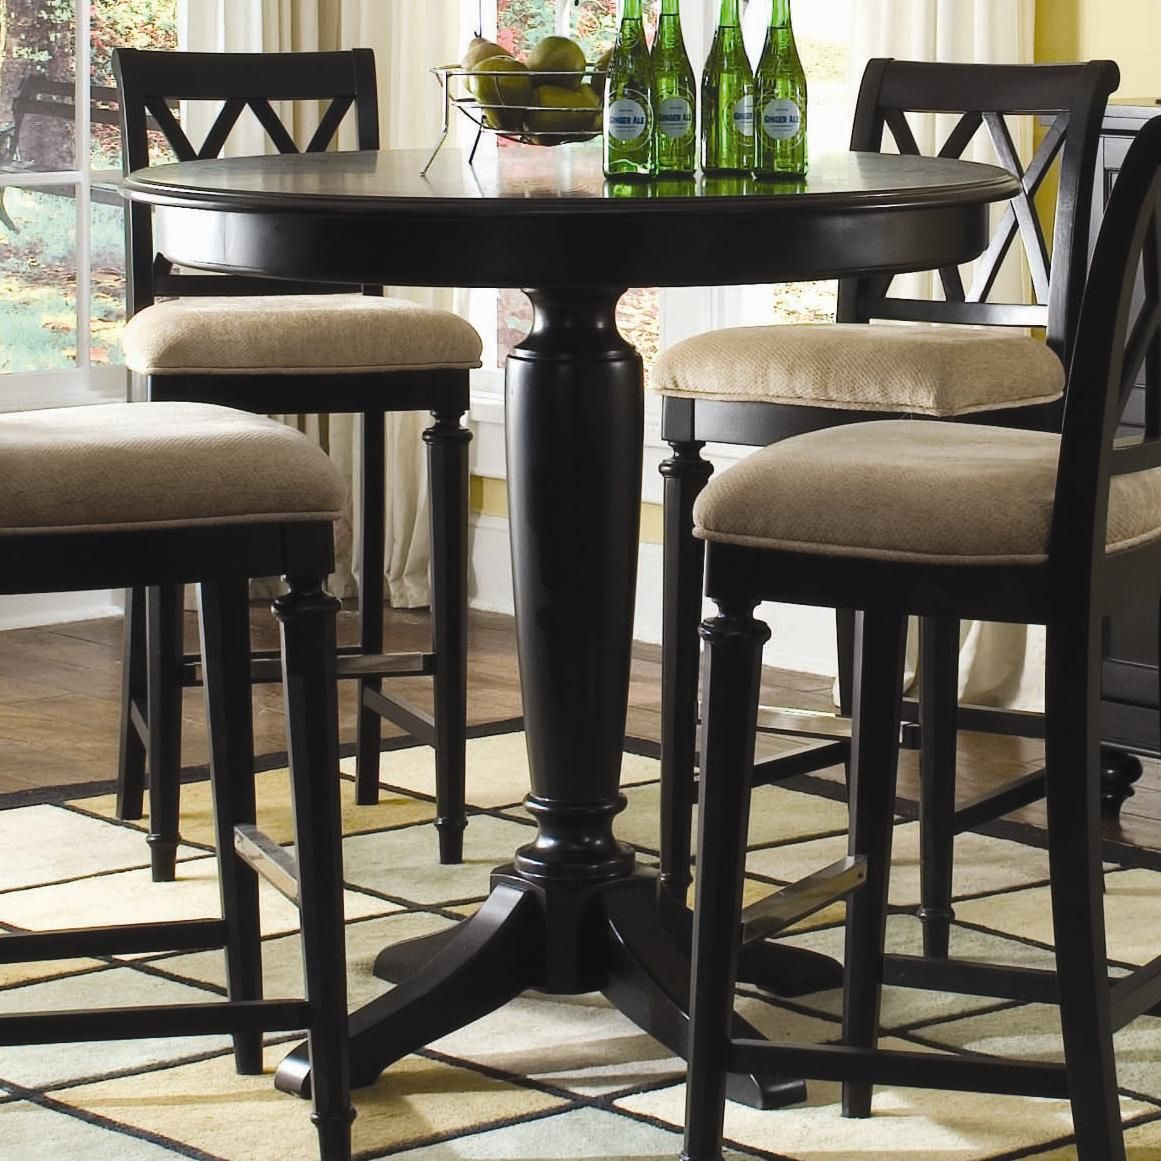 55+ Bar Stools Osage Beach Mo   Modern Rustic Furniture Check More At  Http://evildaysoflucklessjohn.com/20 Bar Stools Osageu2026 | Evolusion Design  Concept ...